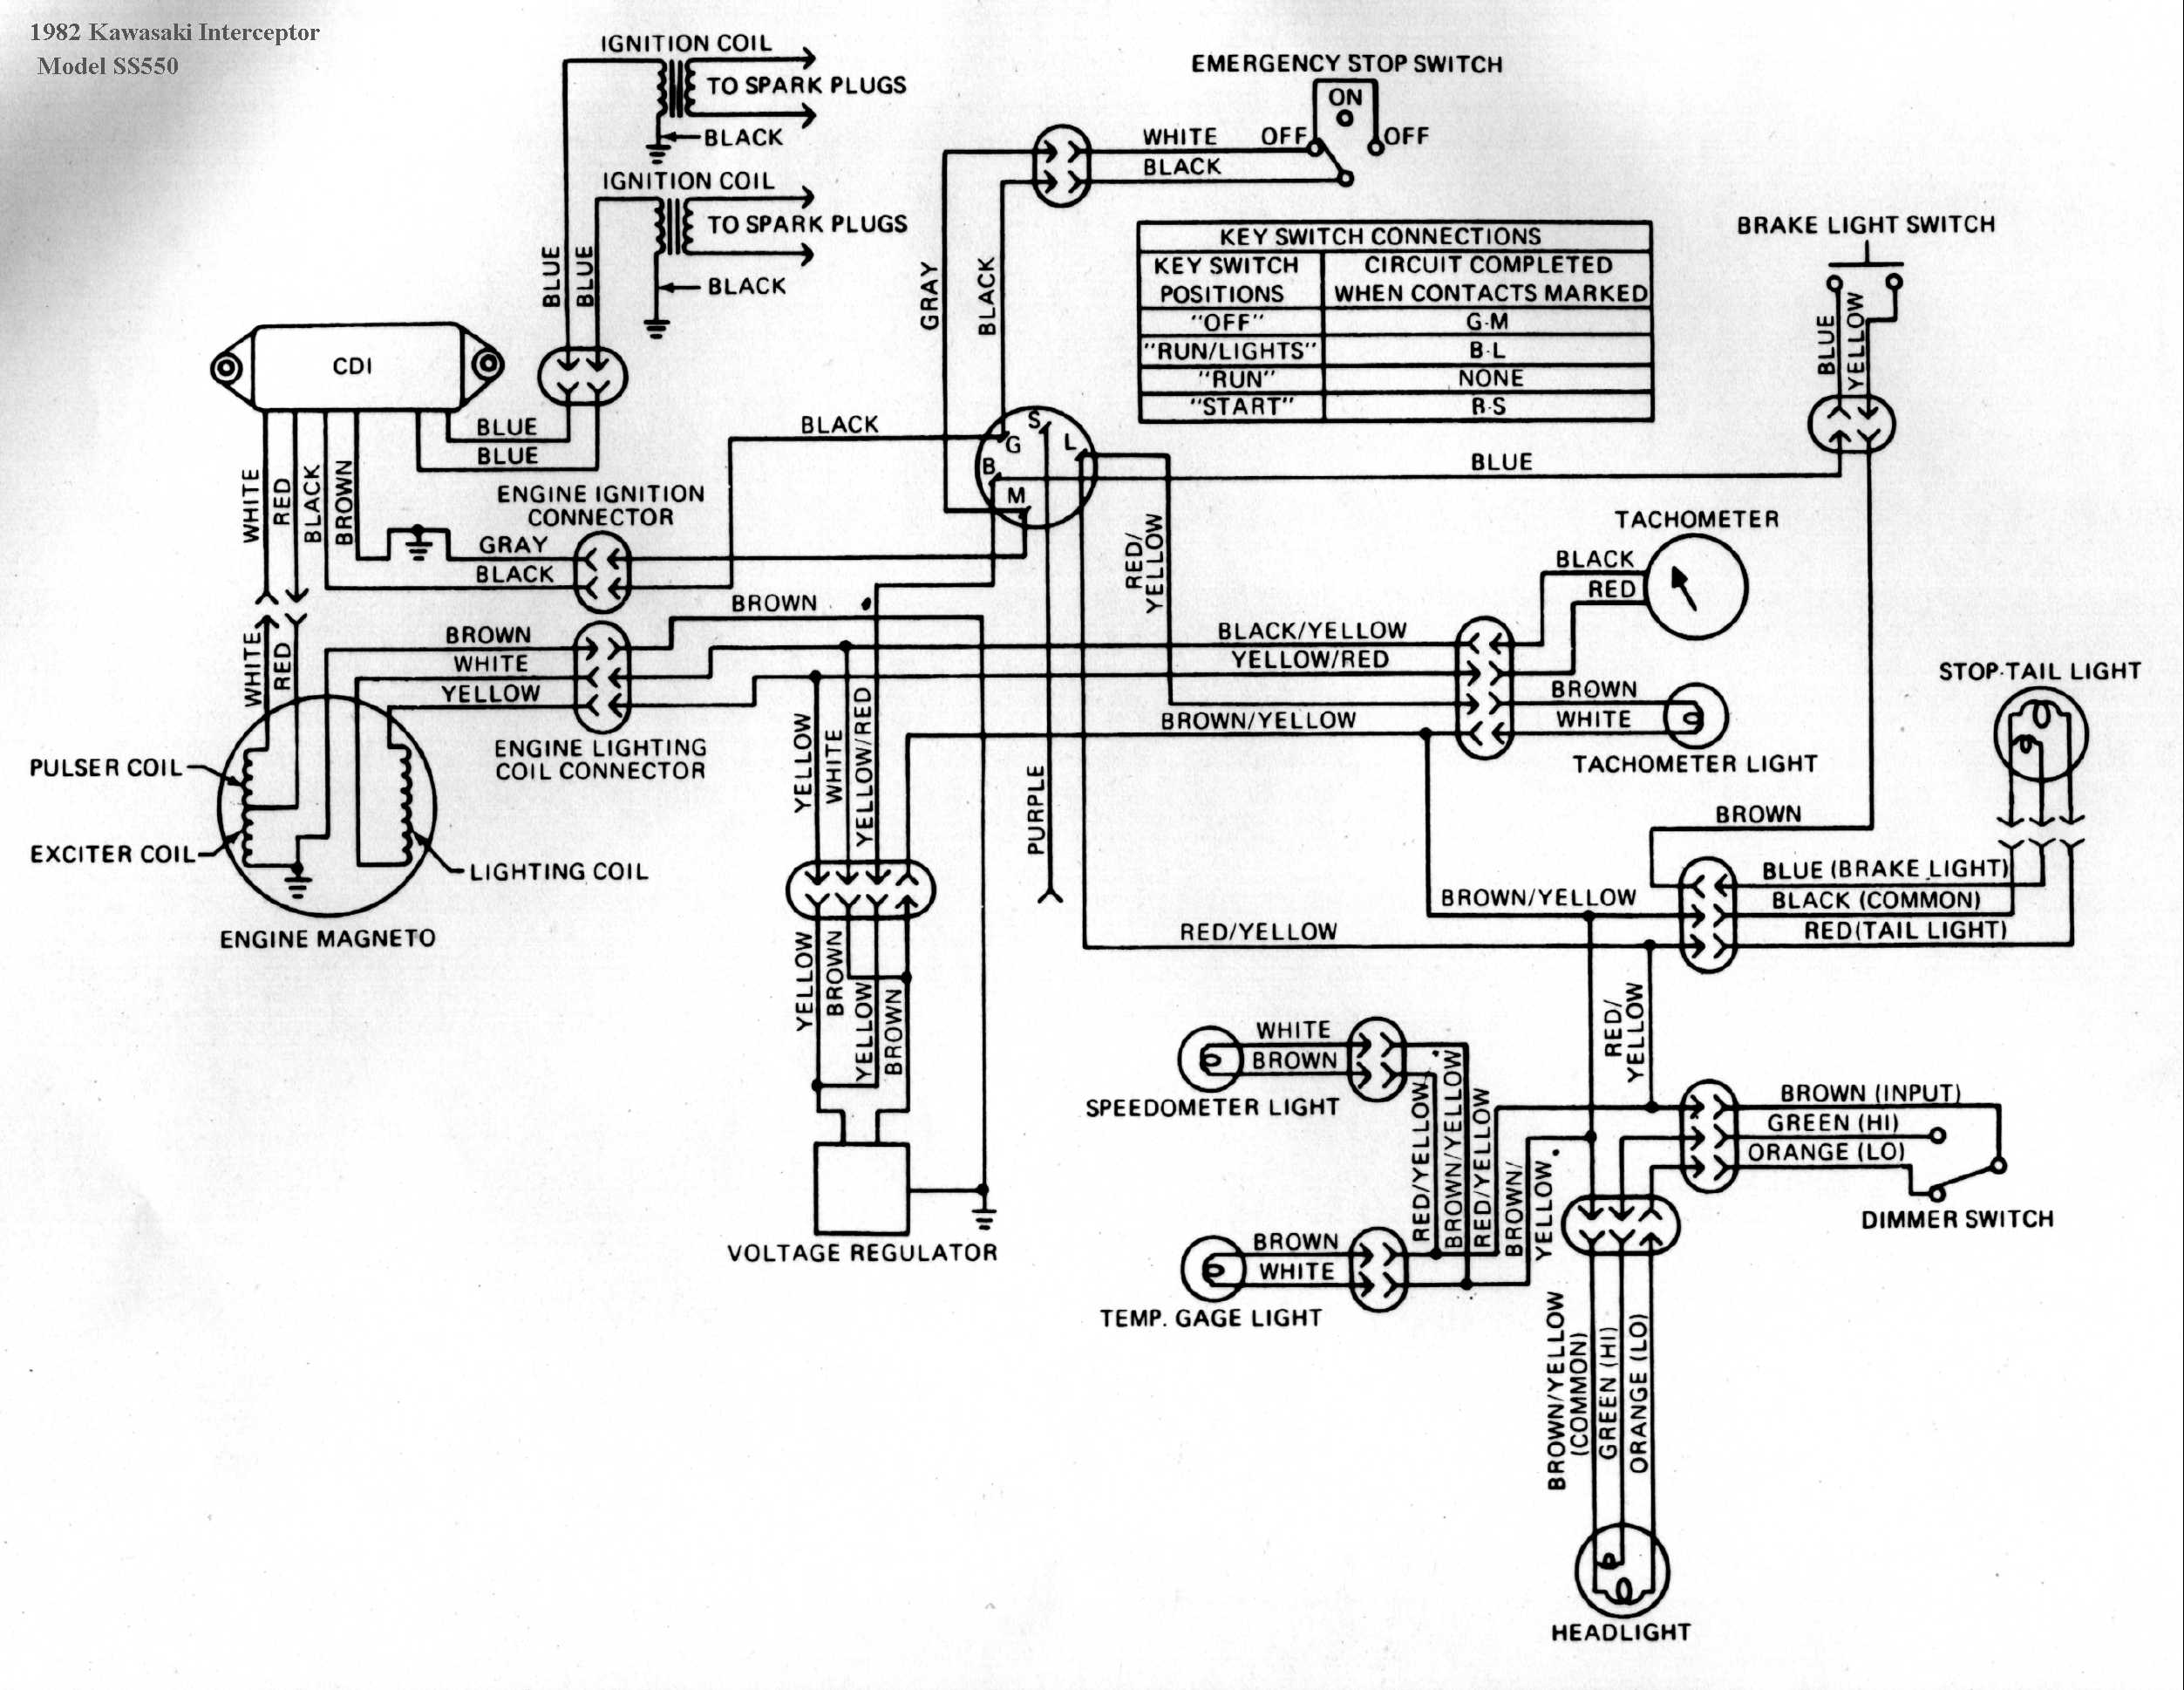 1980 kz440 wiring diagram schematic list of schematic circuit sno jet 1980  kawasaki ltd 440 wiring